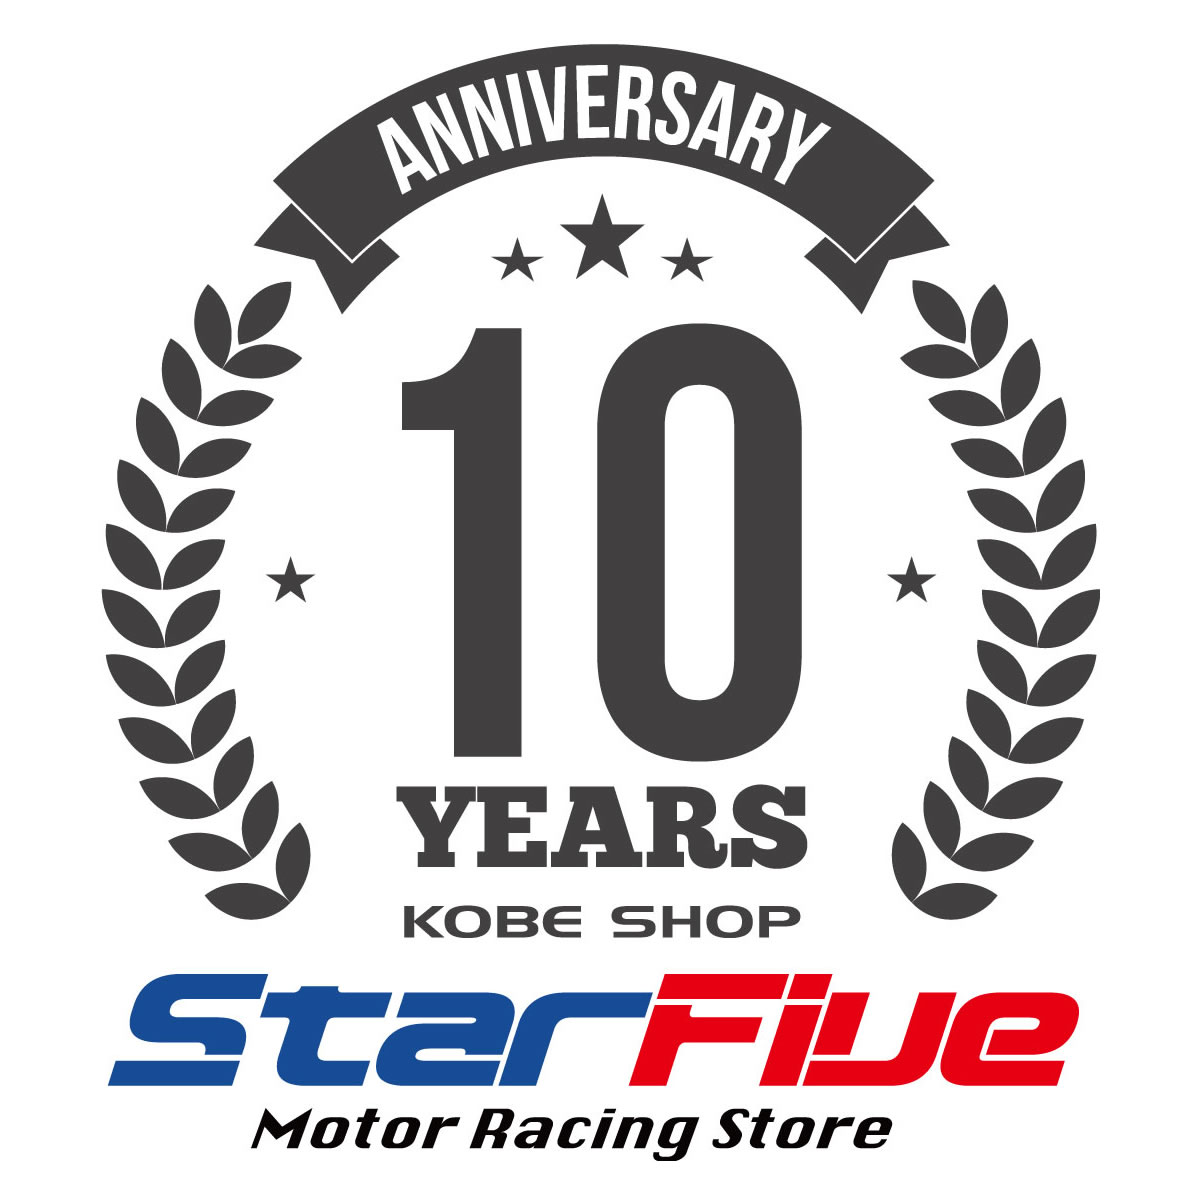 f:id:star5racing:20200630142759j:plain